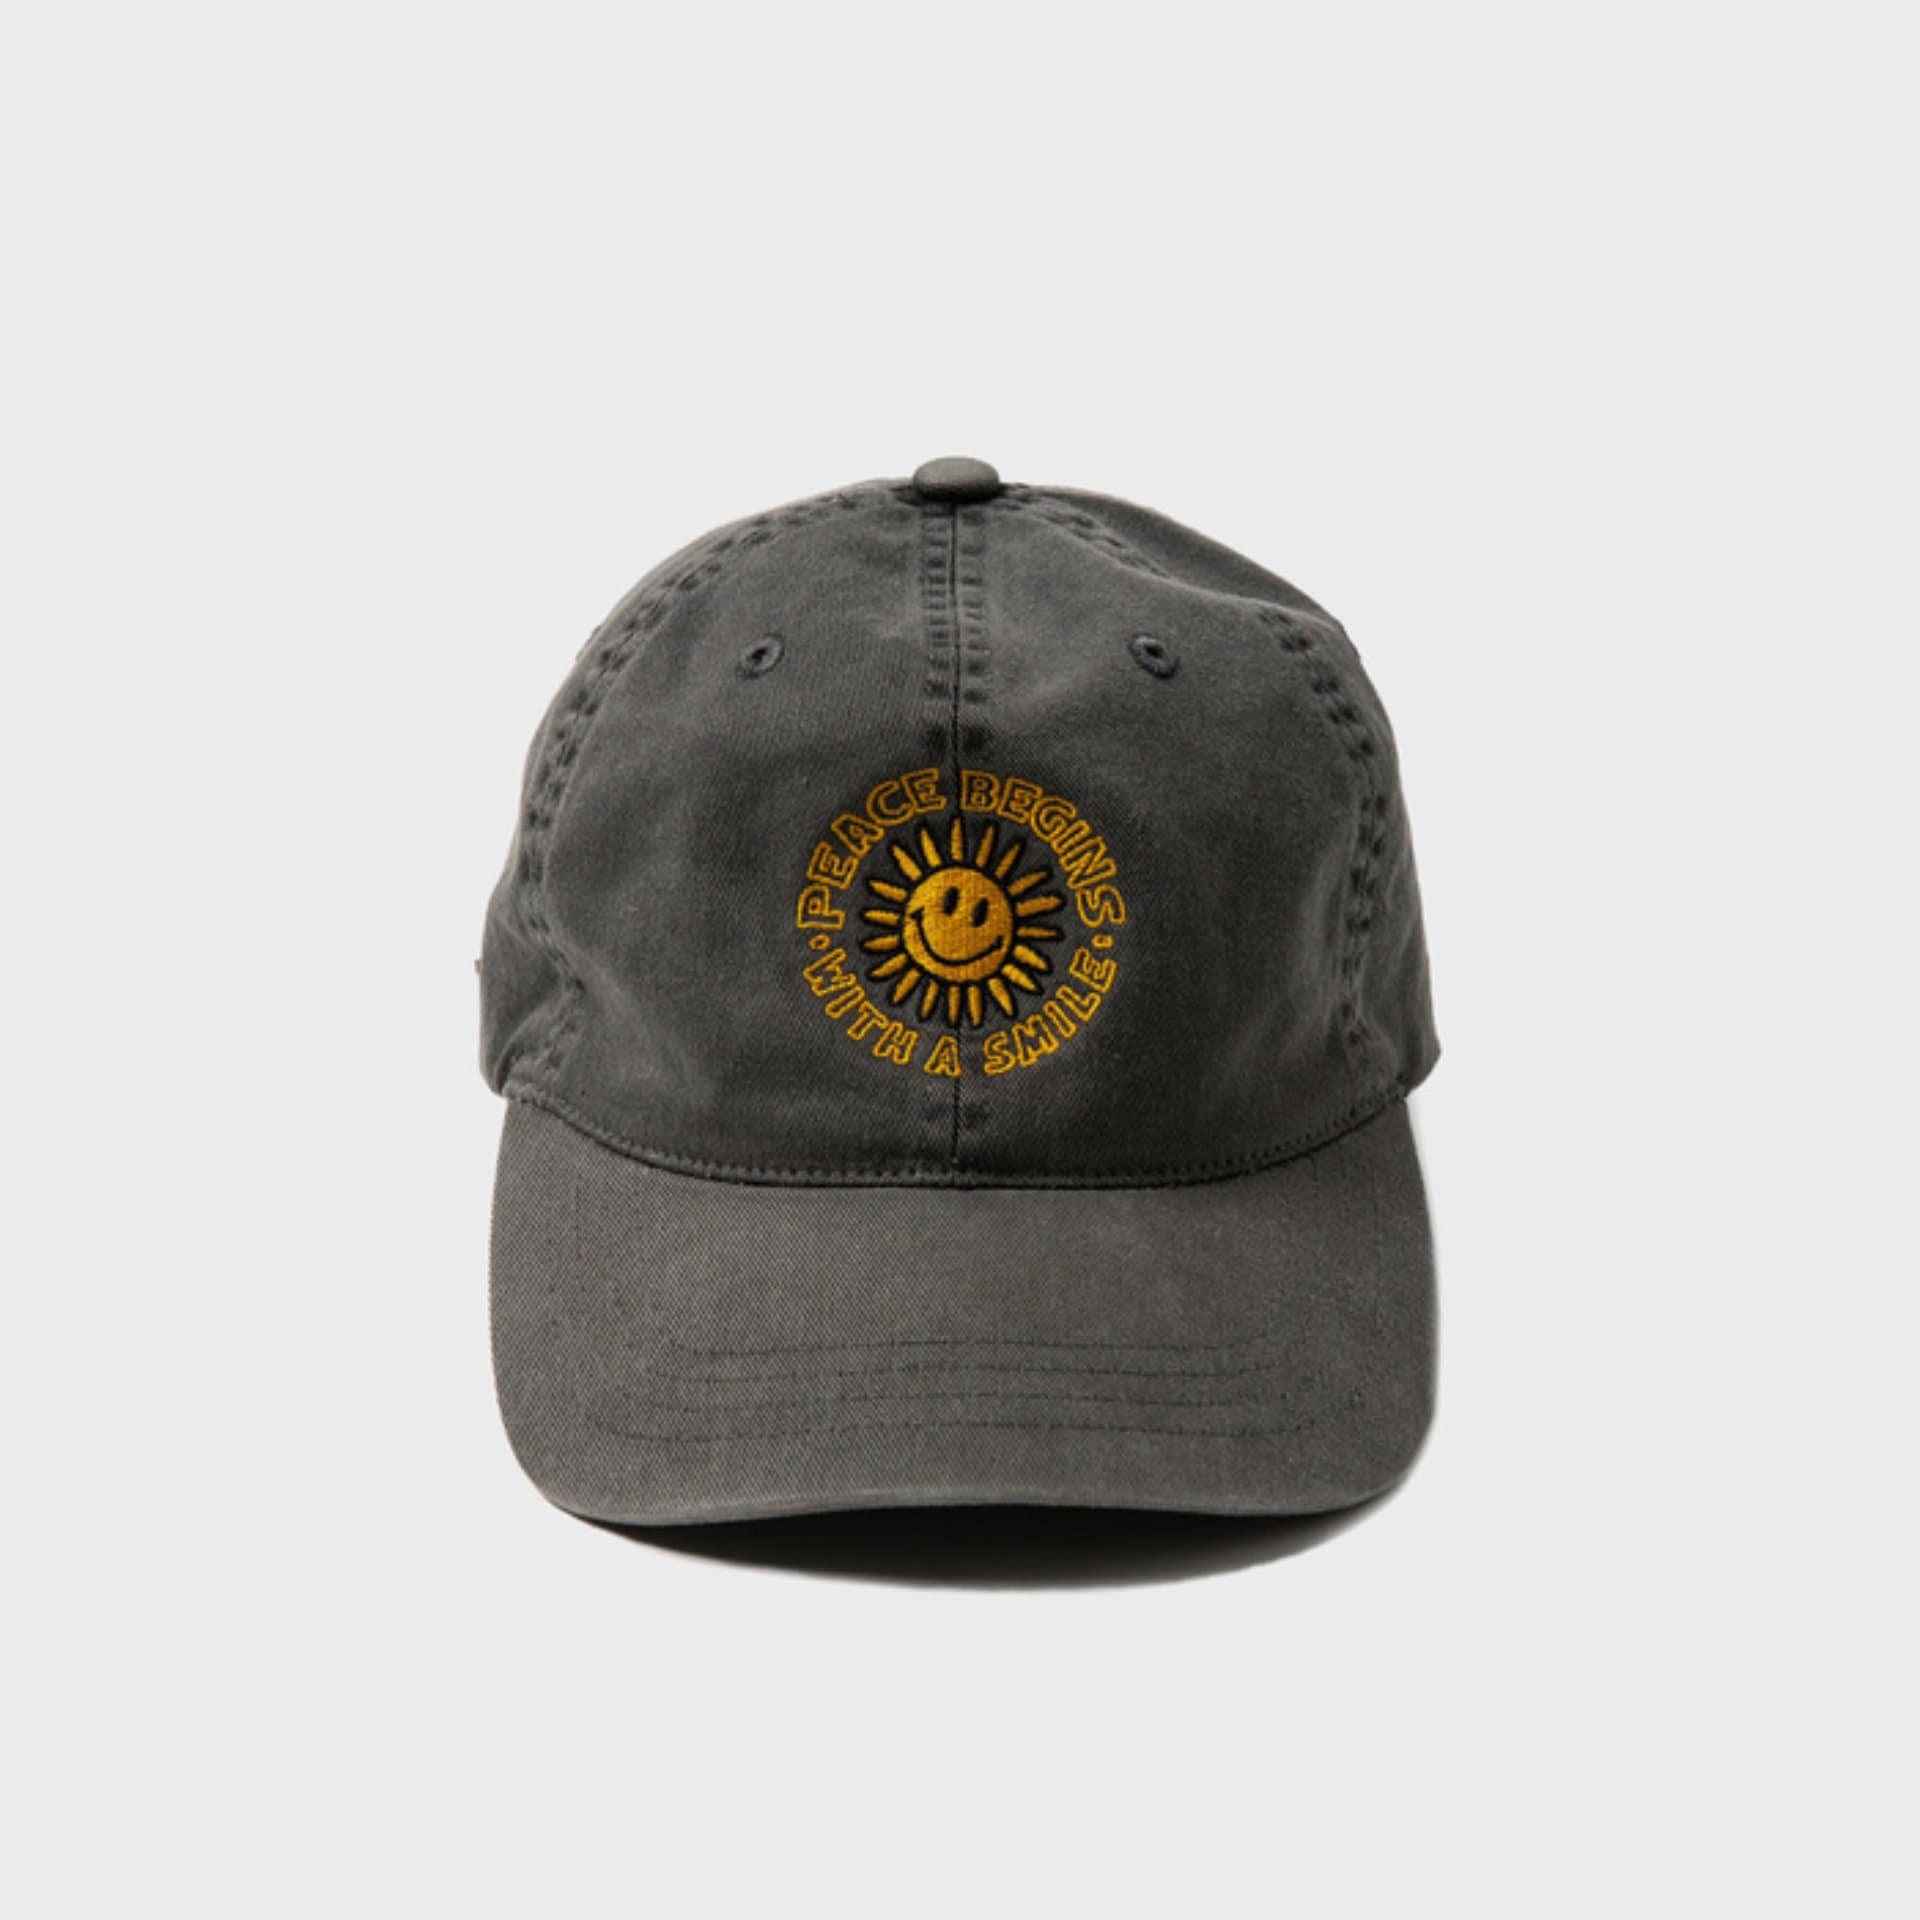 PEACE BEGINS SMILE PIGMENT CAP (BLACK)